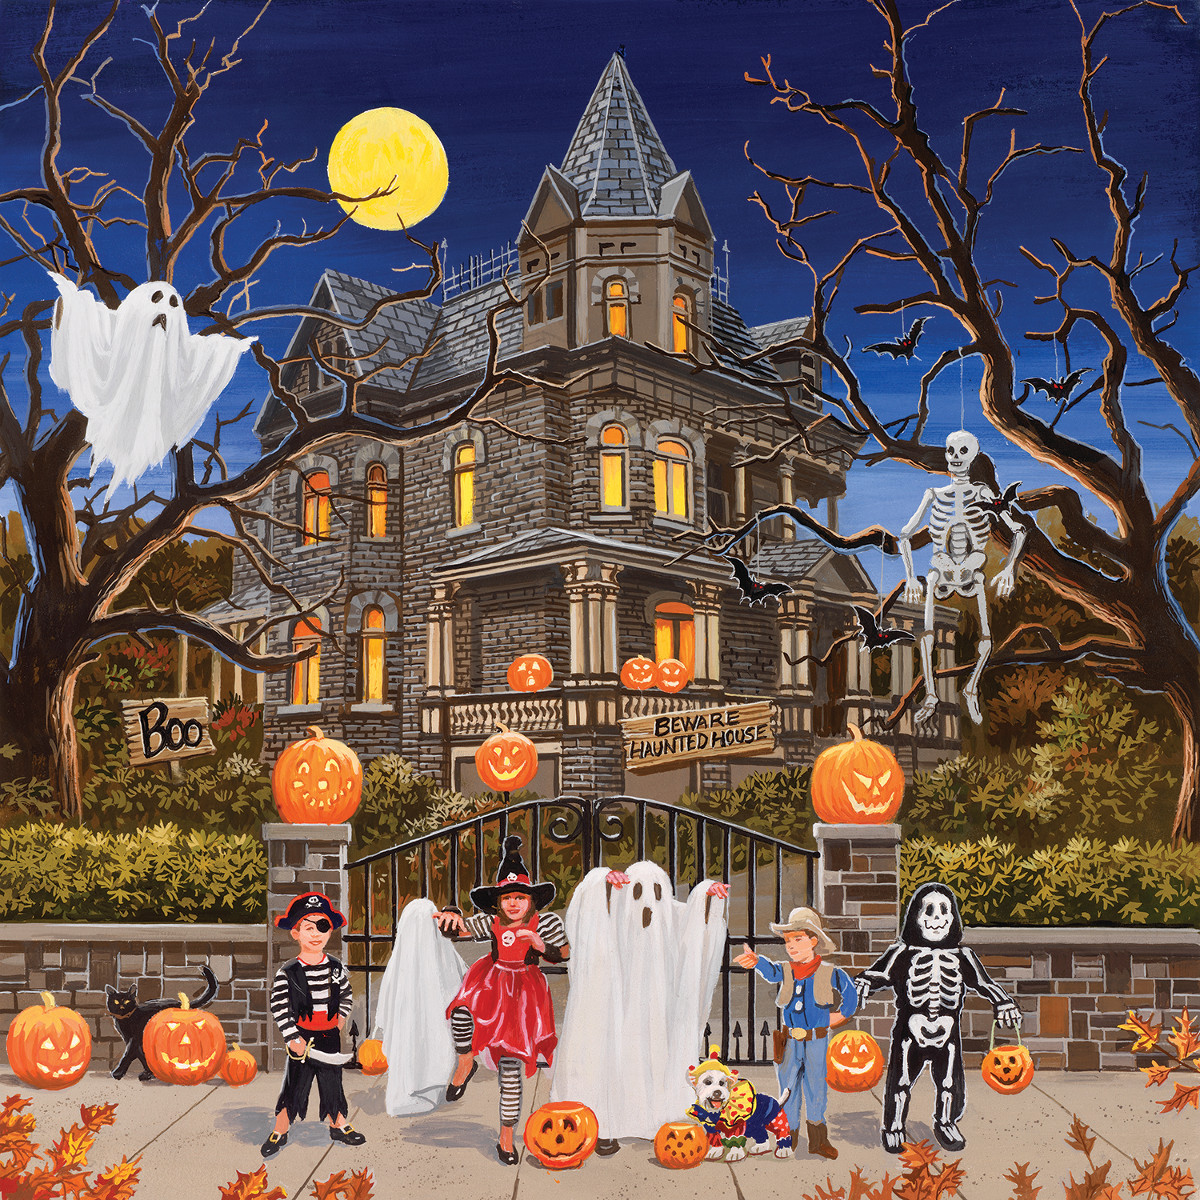 Beware Haunted House - Scratch and Dent Halloween Jigsaw Puzzle